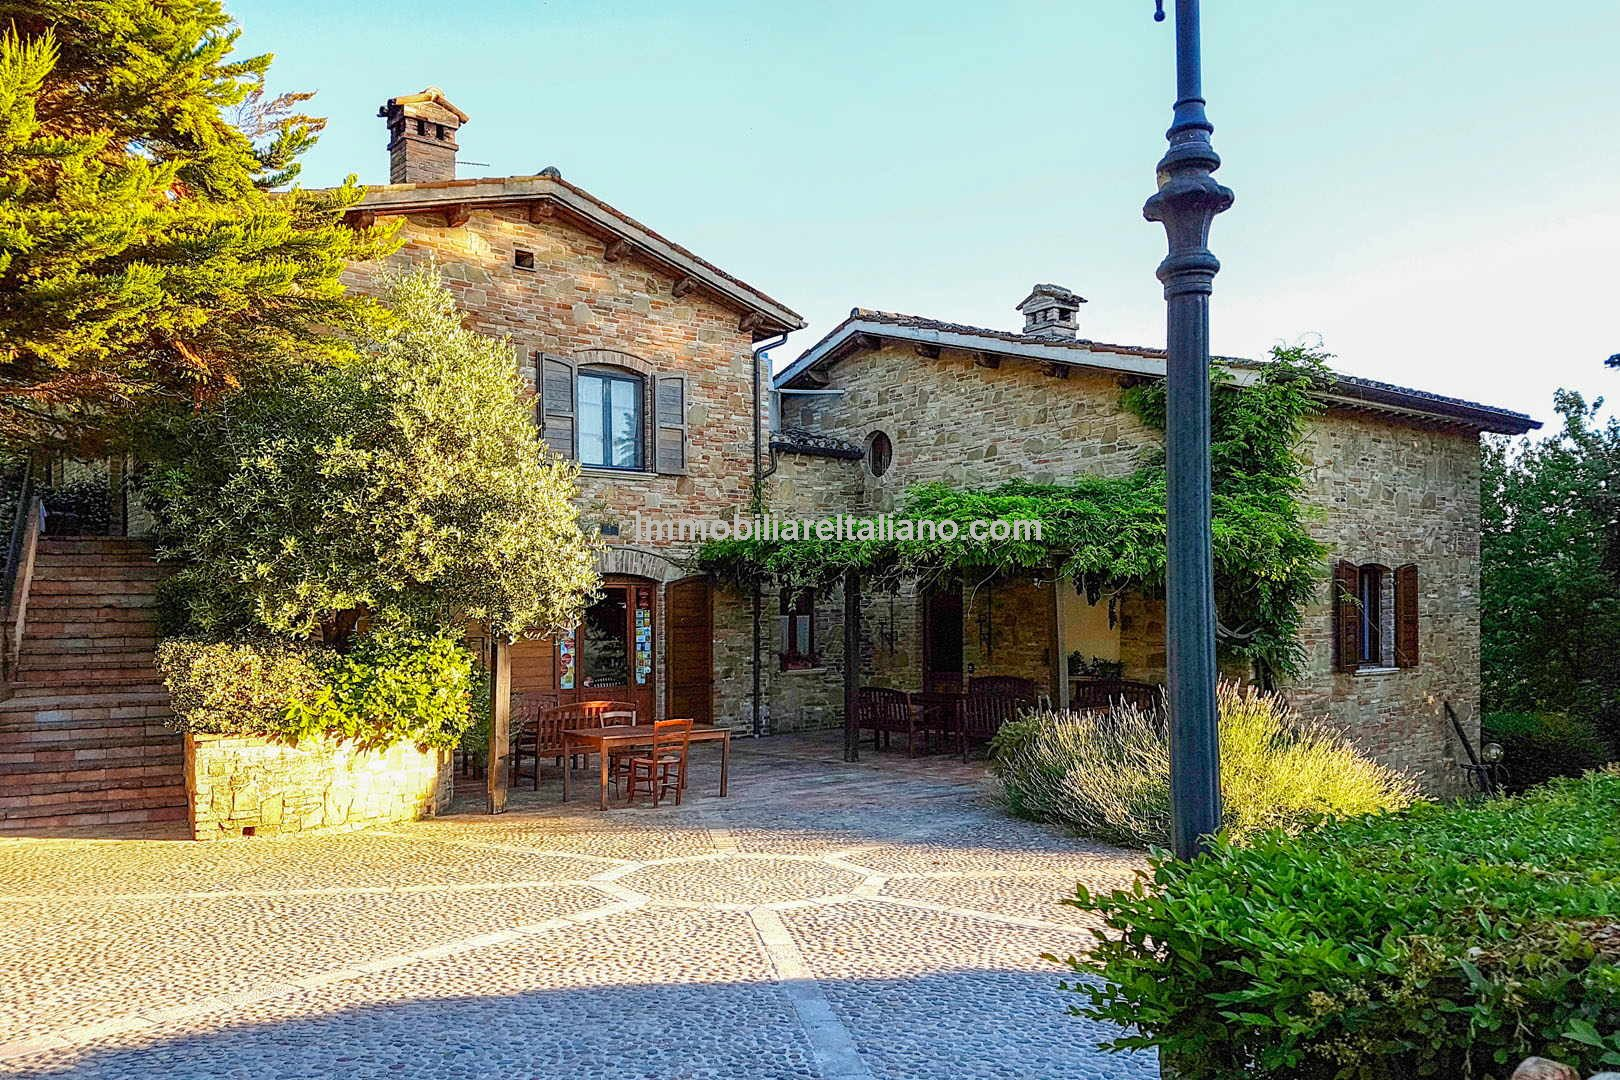 Small business opportunity in Italy. Agriturismo near to Urbino in the Marche region.